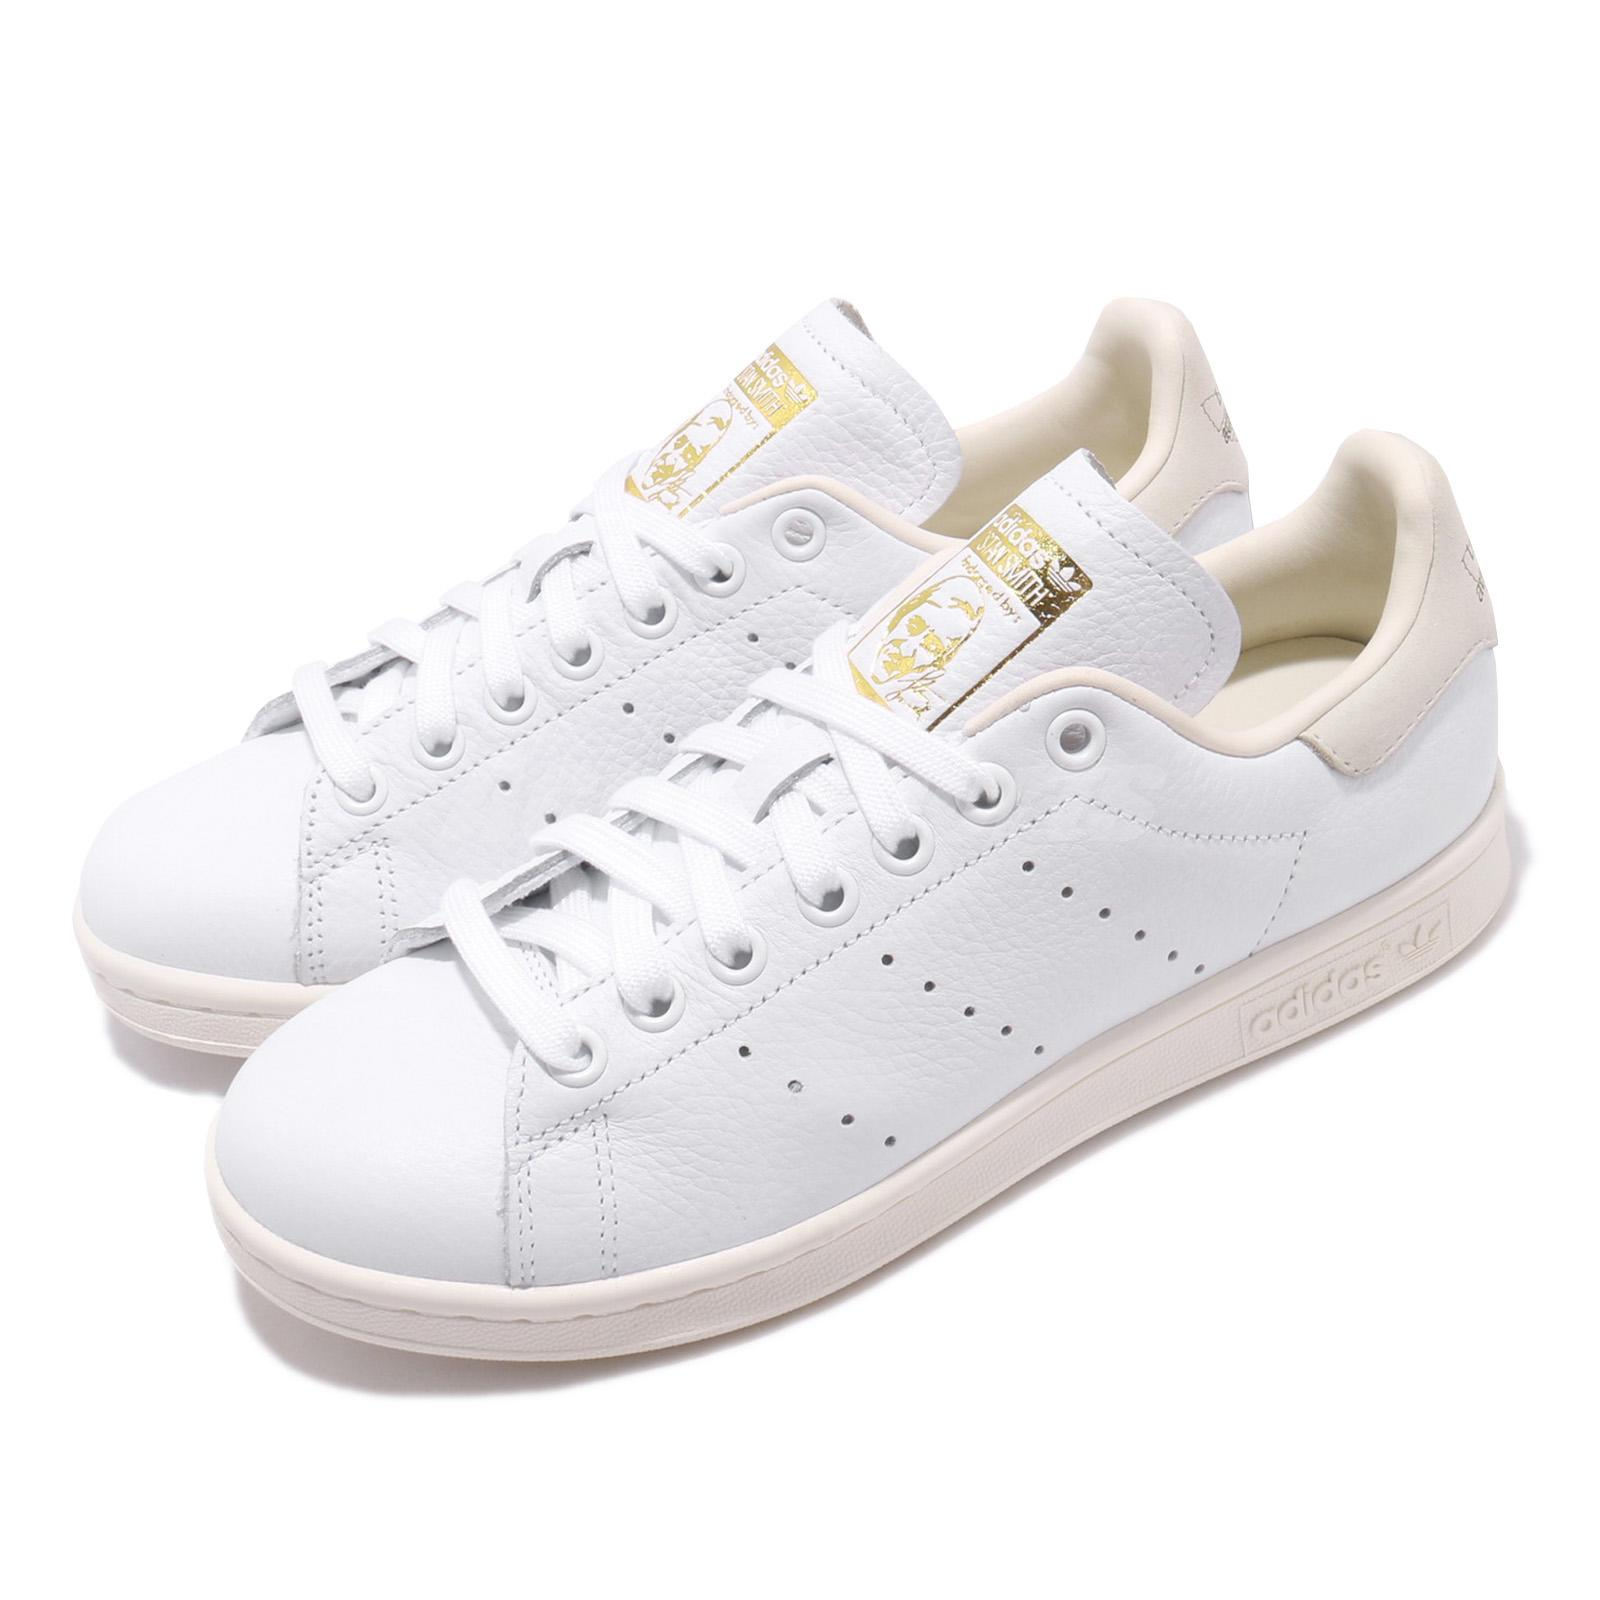 Details about adidas Originals Stan Smith W Off White Ivory Gold Women Casual Shoes CG6820